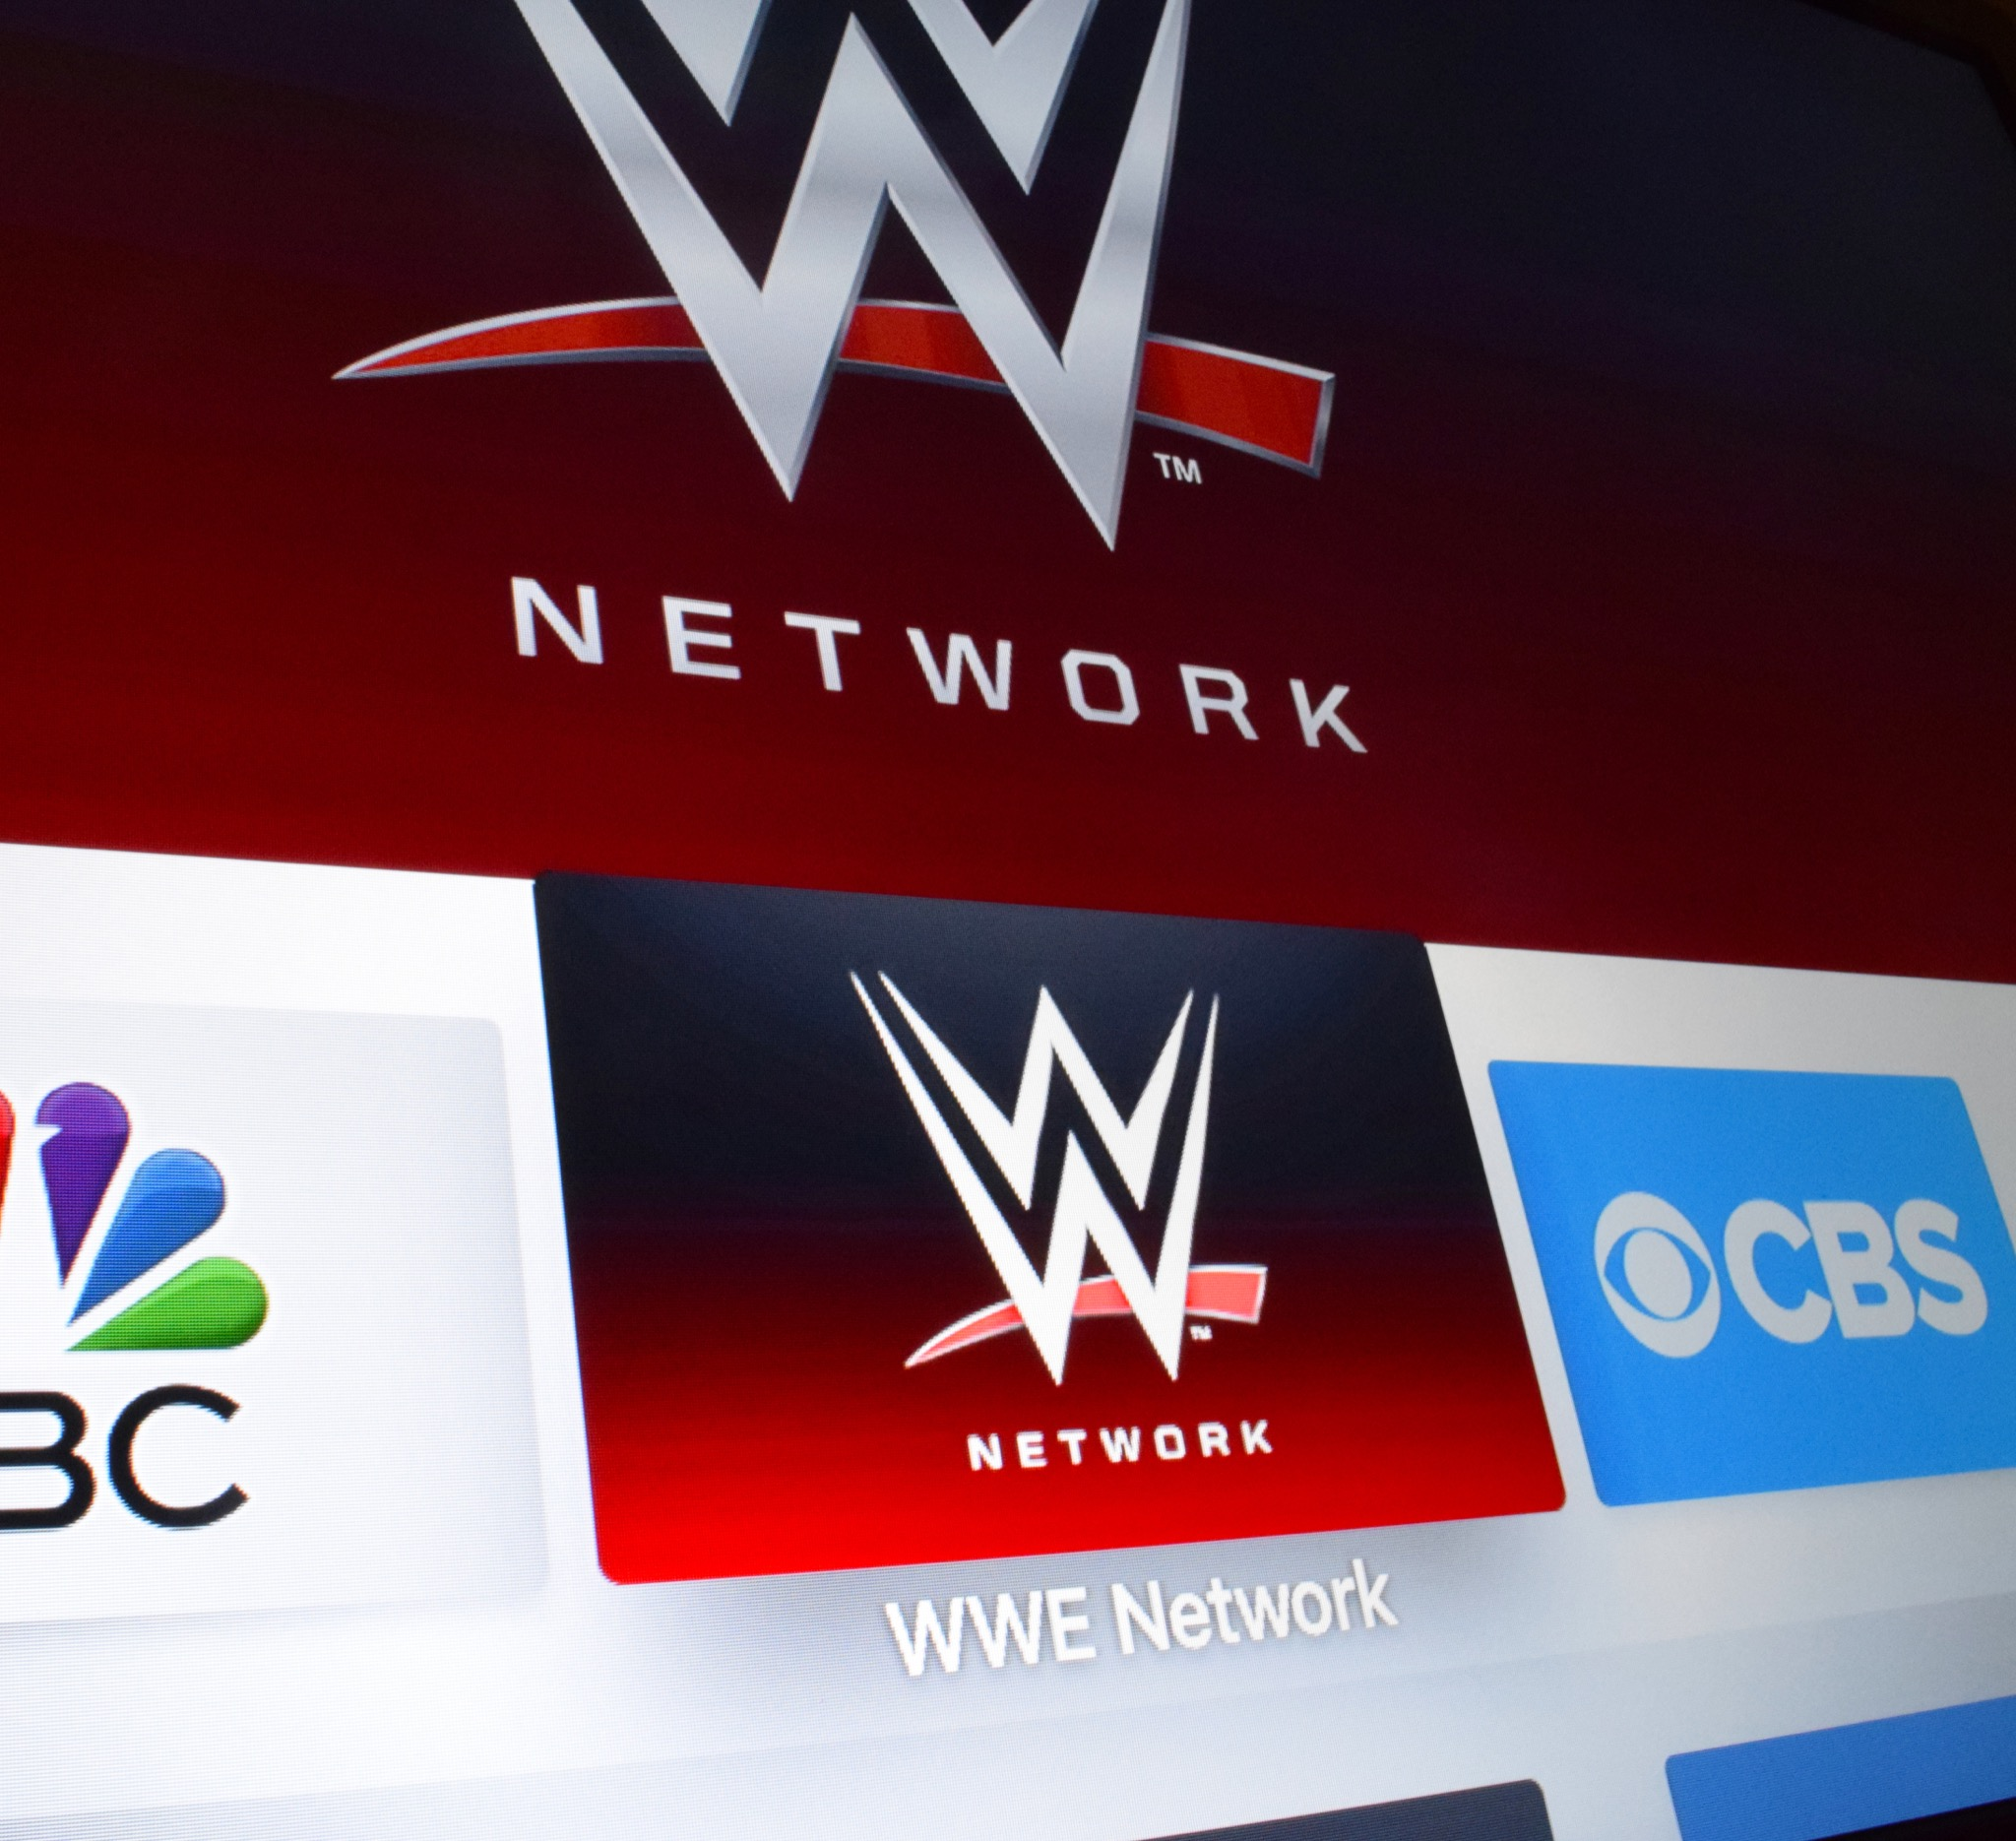 WWE Fastlane 2019: Date, Time, Matches & Location